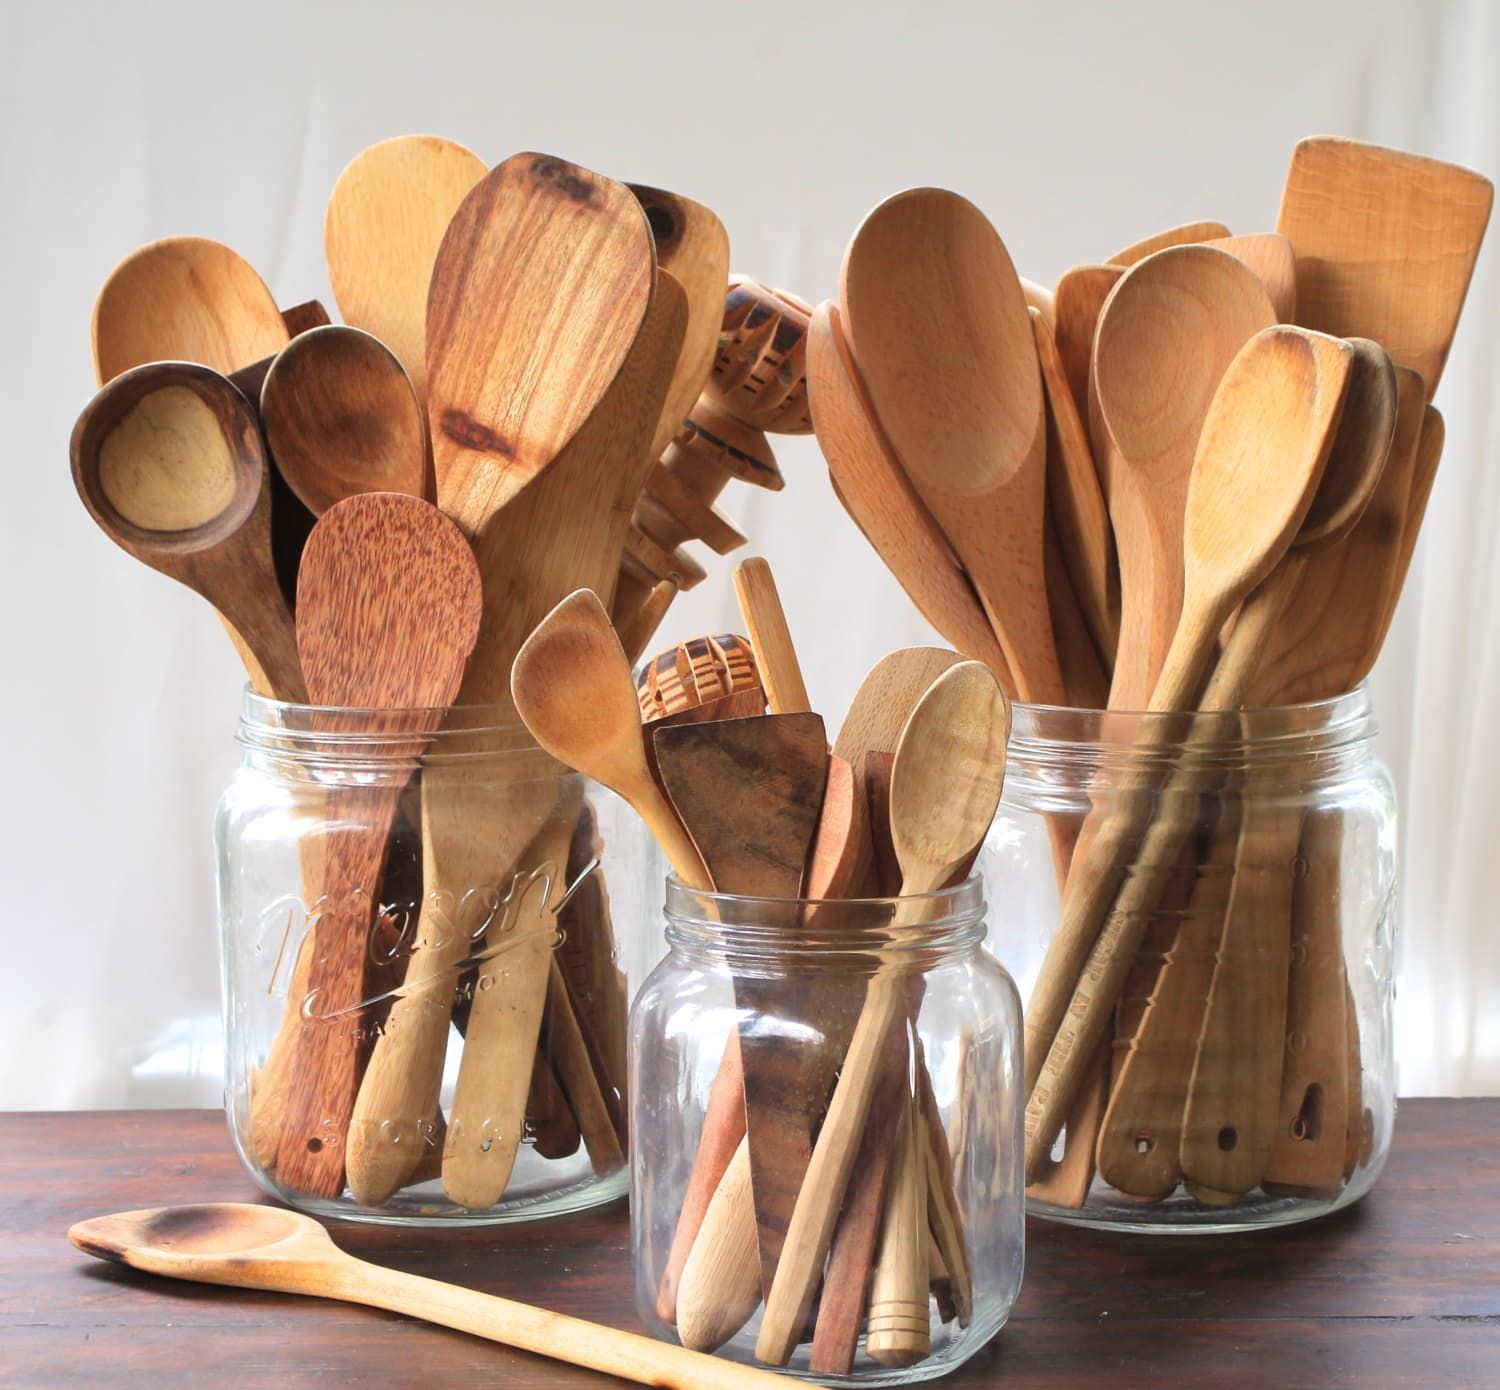 The One and Only Wooden Spoon You Really Need